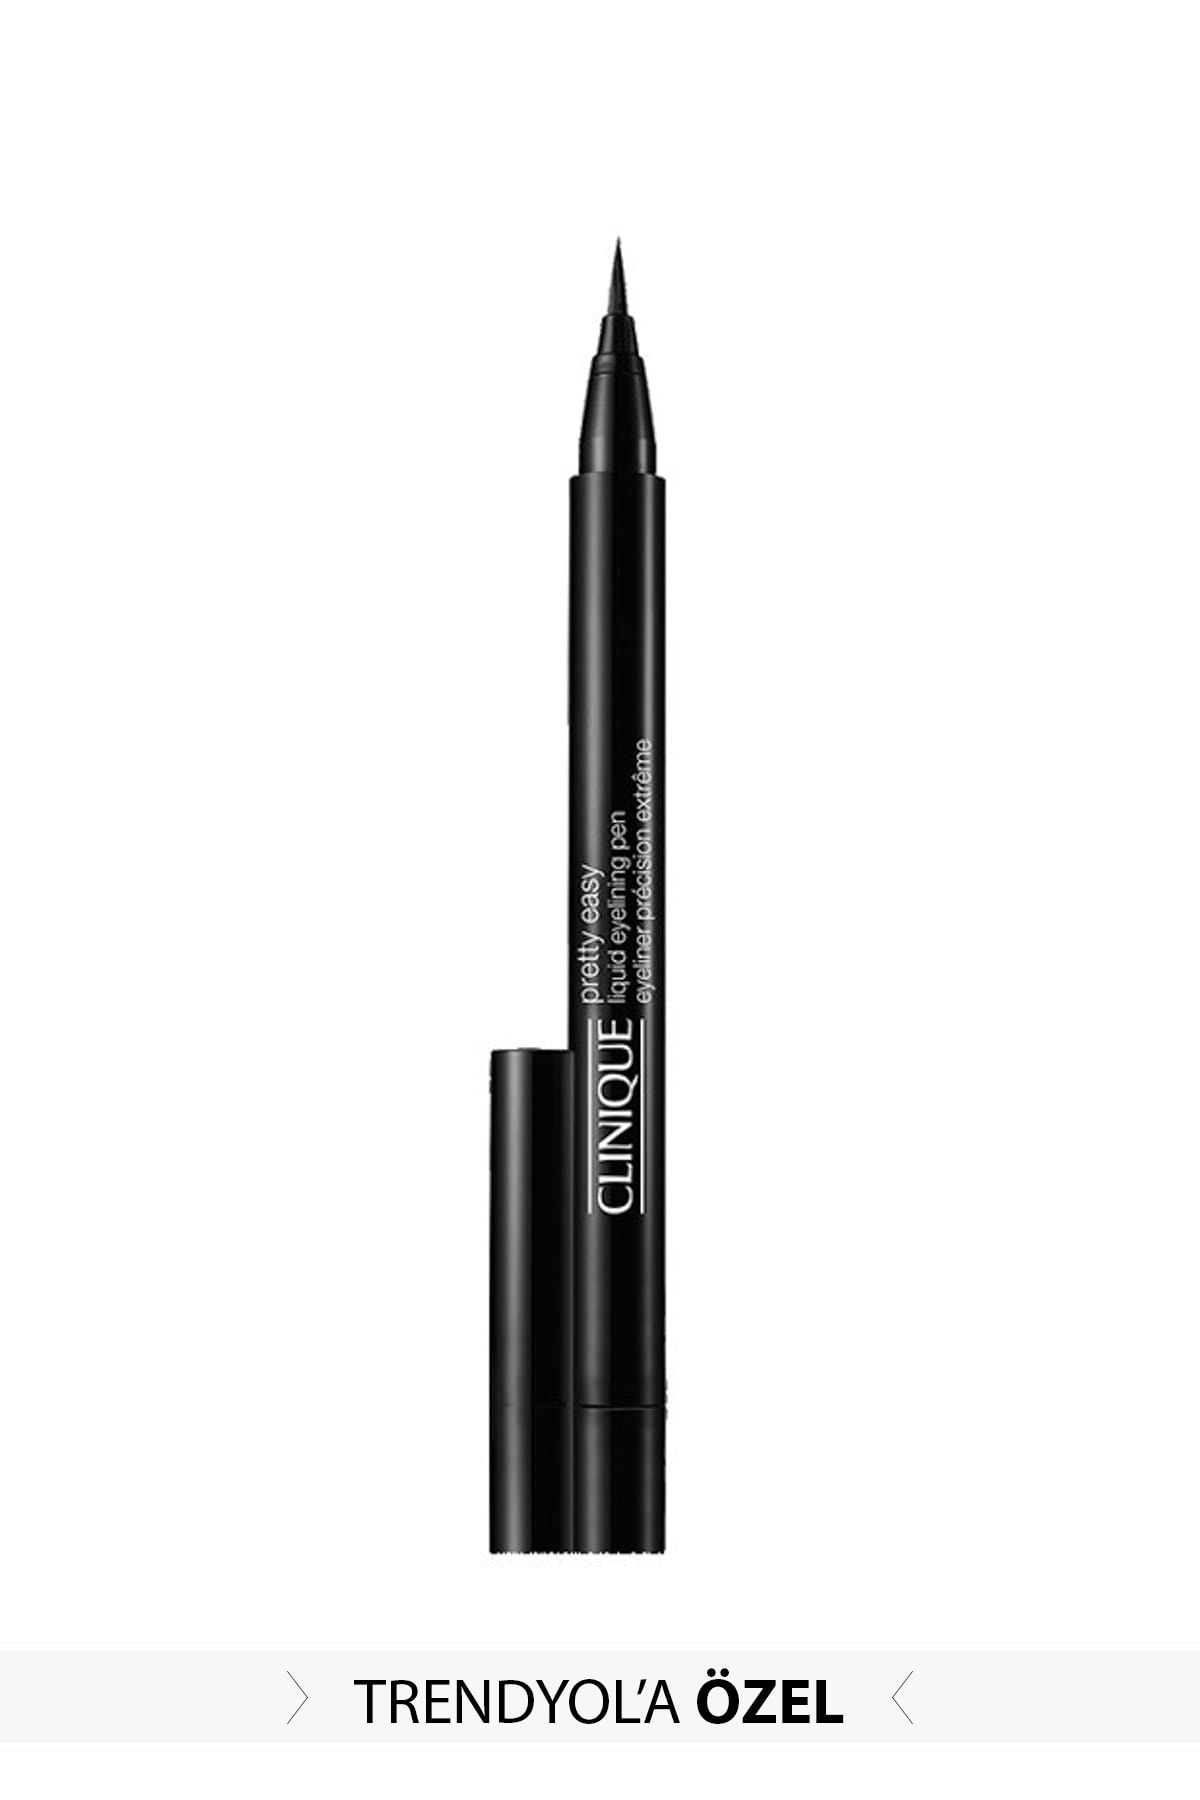 Clinique Likit Siyah Eyeliner - Pretty Easy Black 0.34 ml 020714896317 1